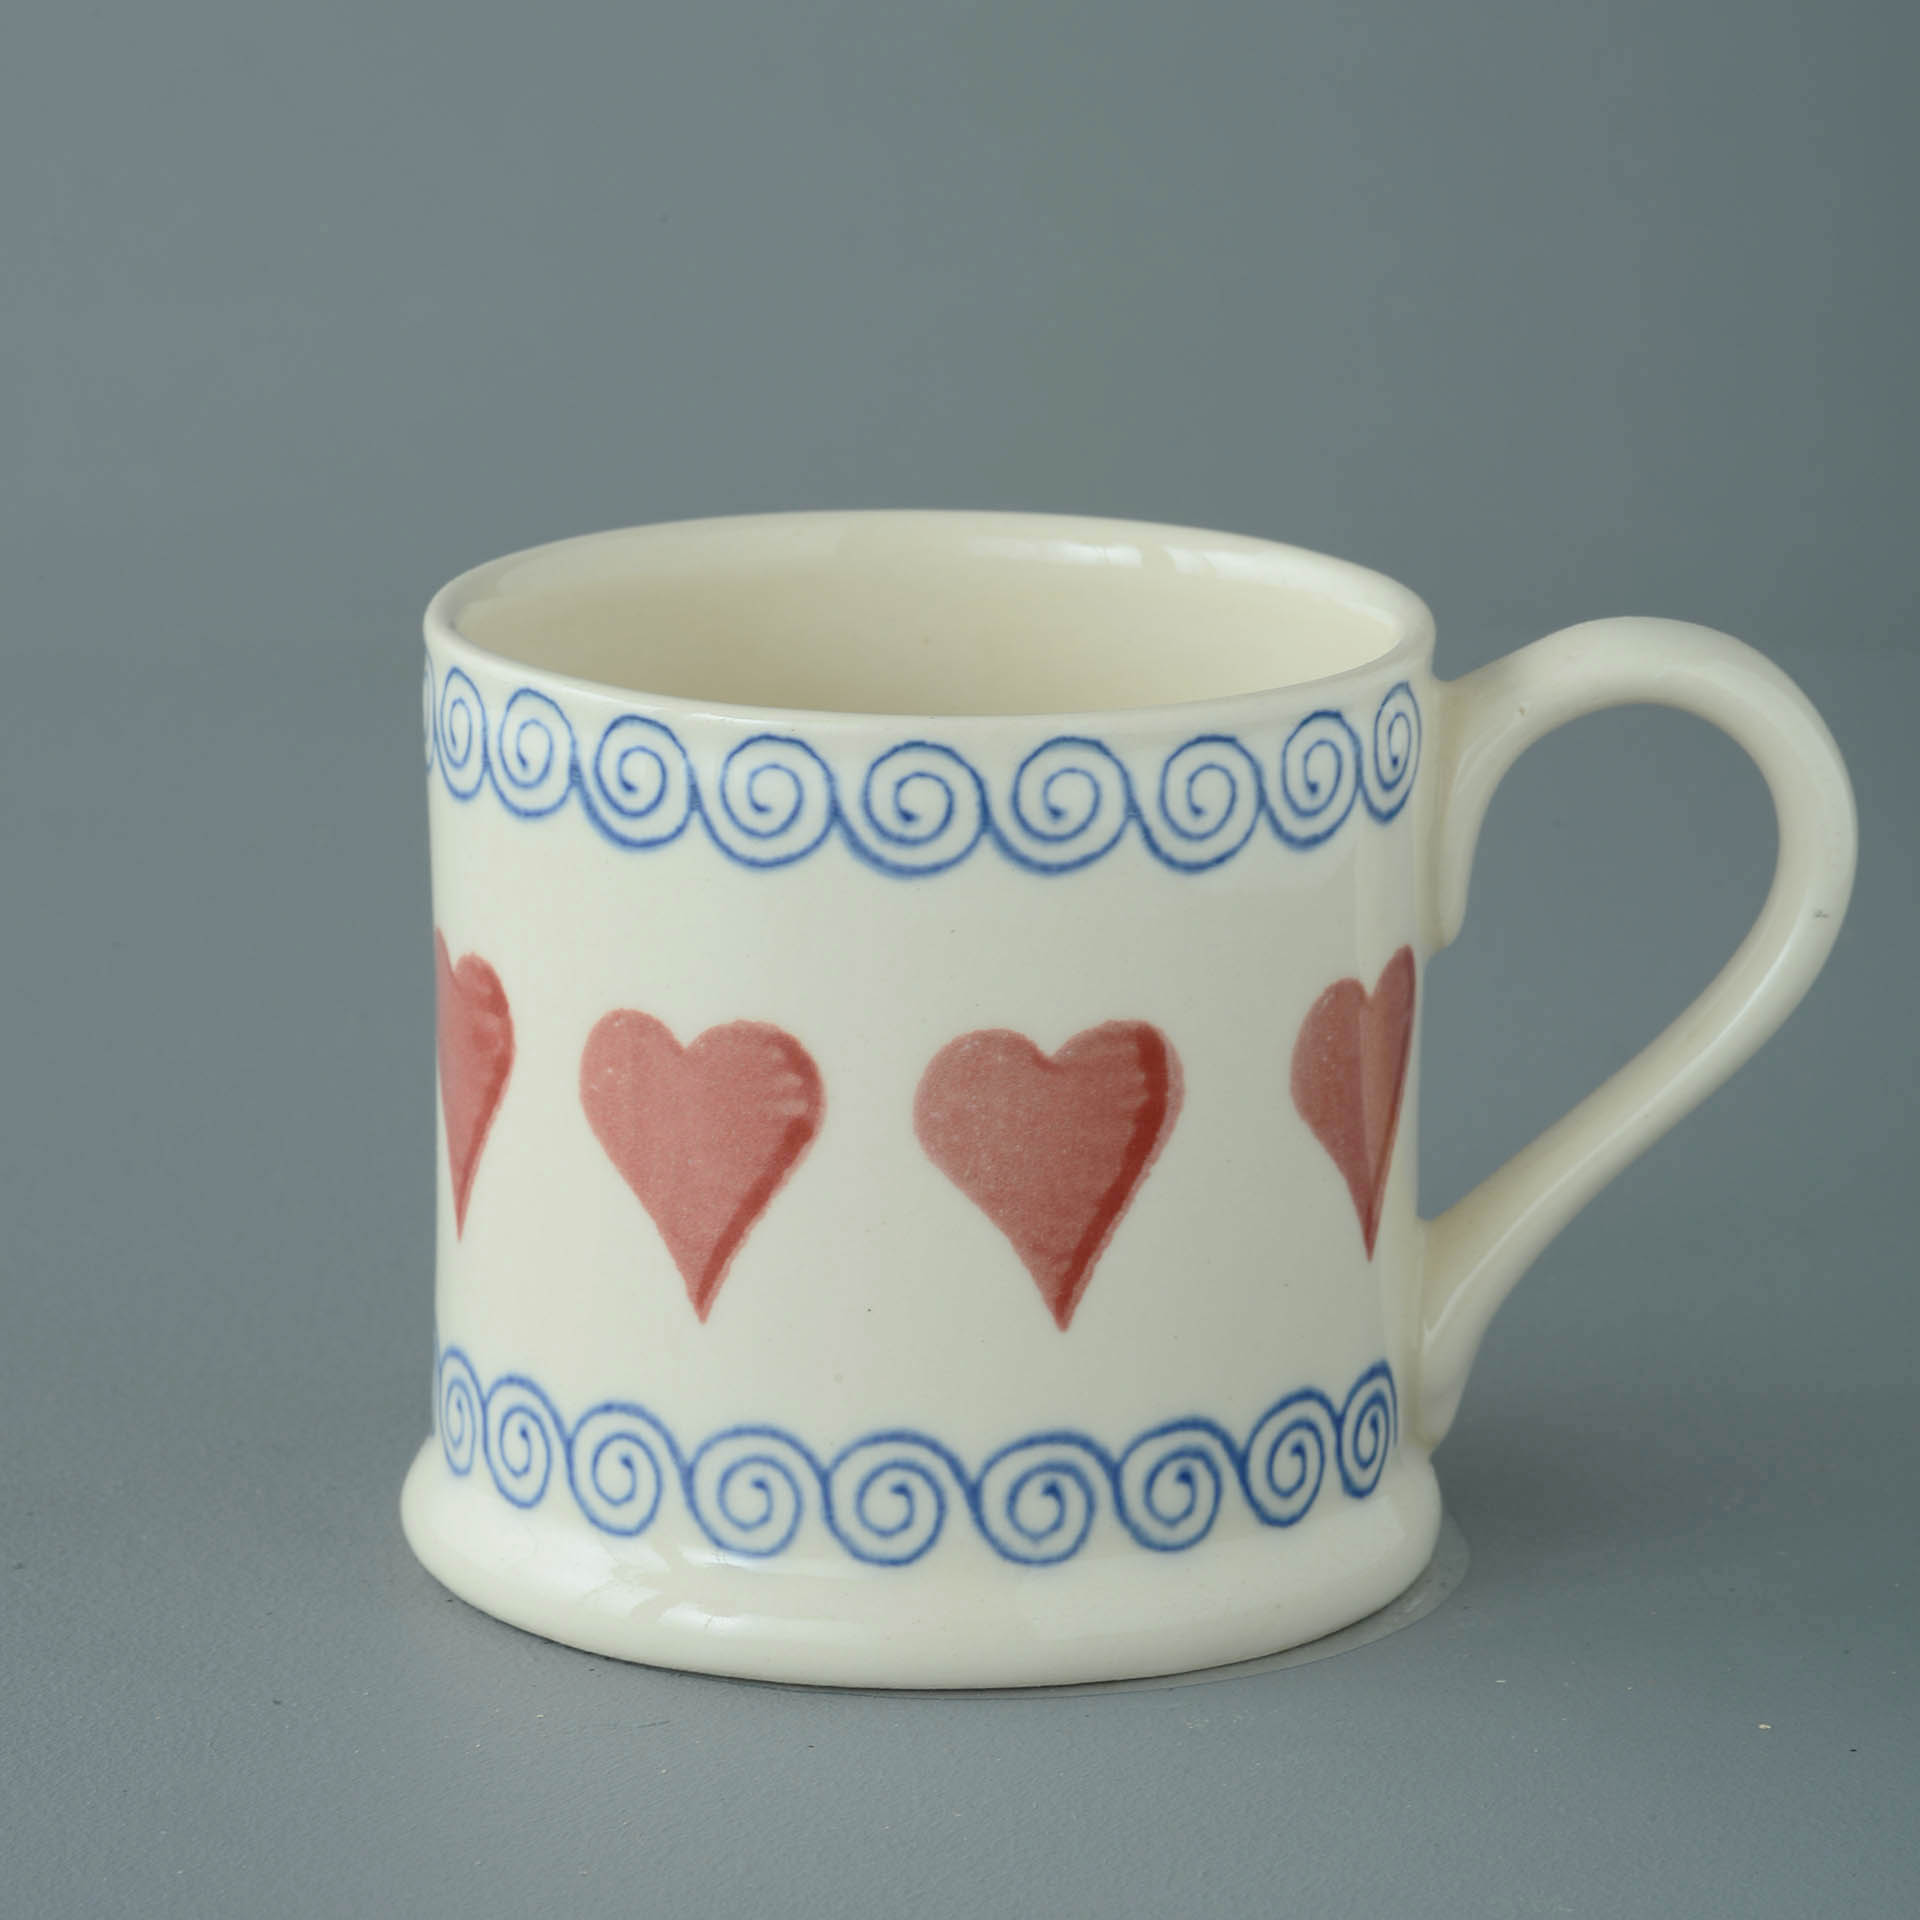 Hearts 250ml Large Mug 8 x 8.4cm